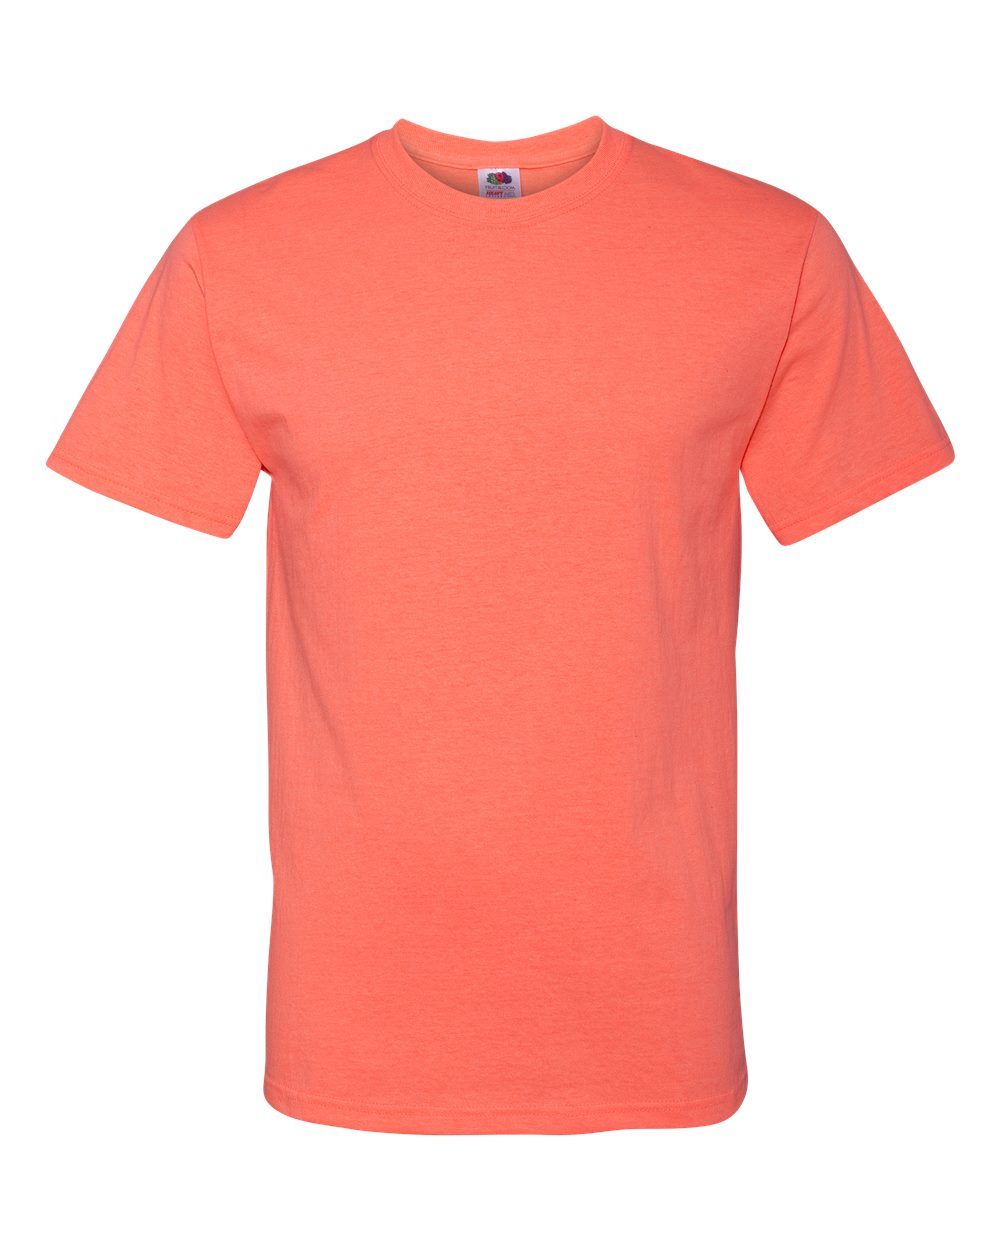 click to view Retro Heather Coral